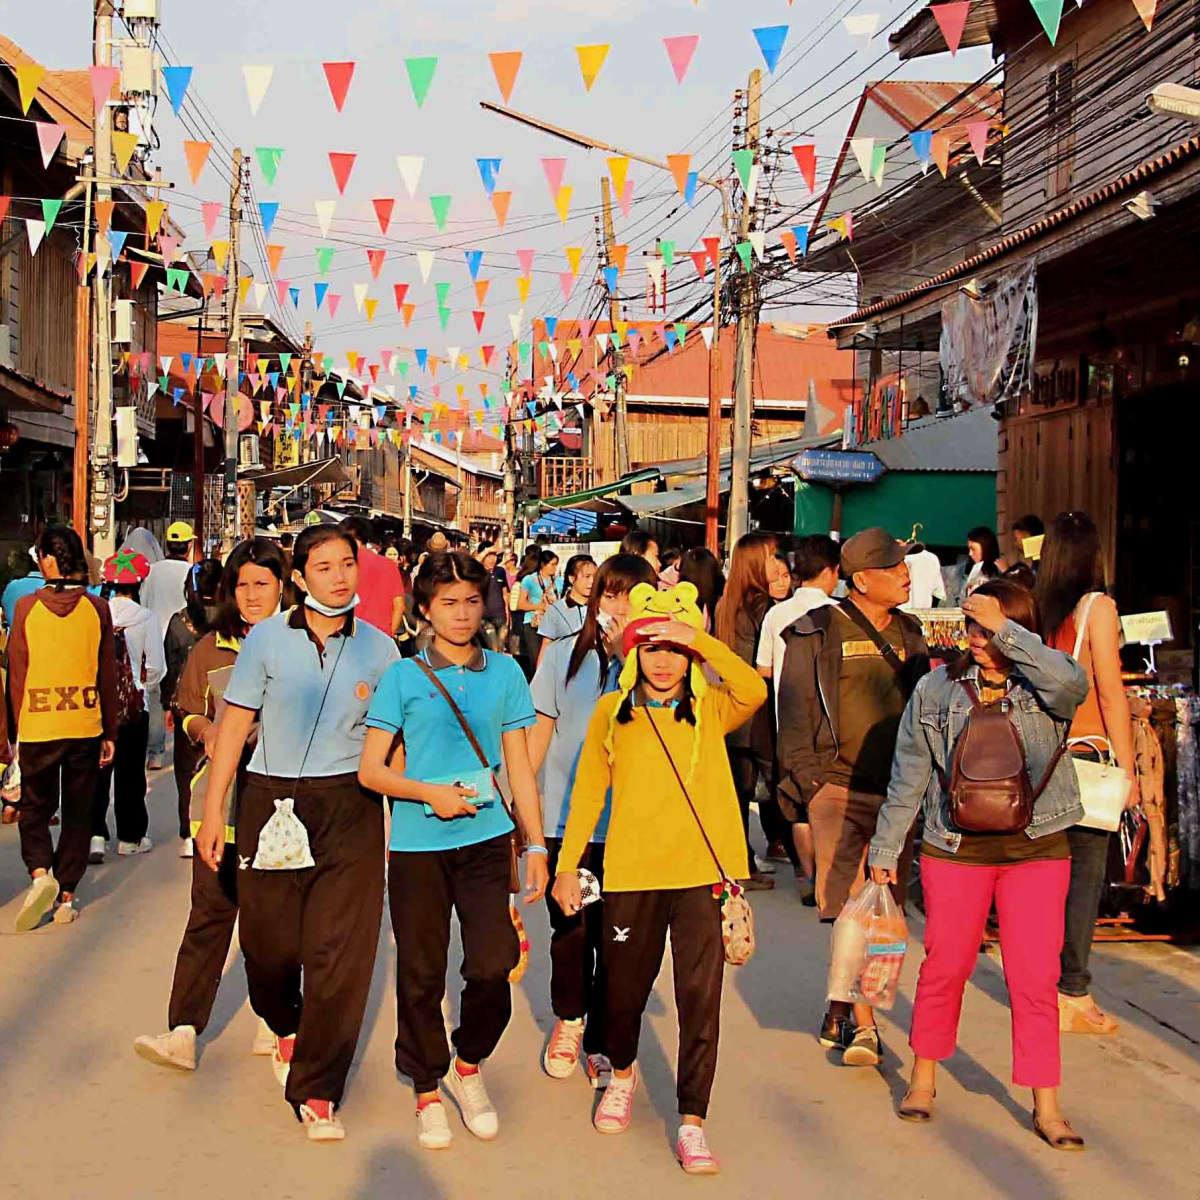 Thailand: The Chiang Khan Walking Street